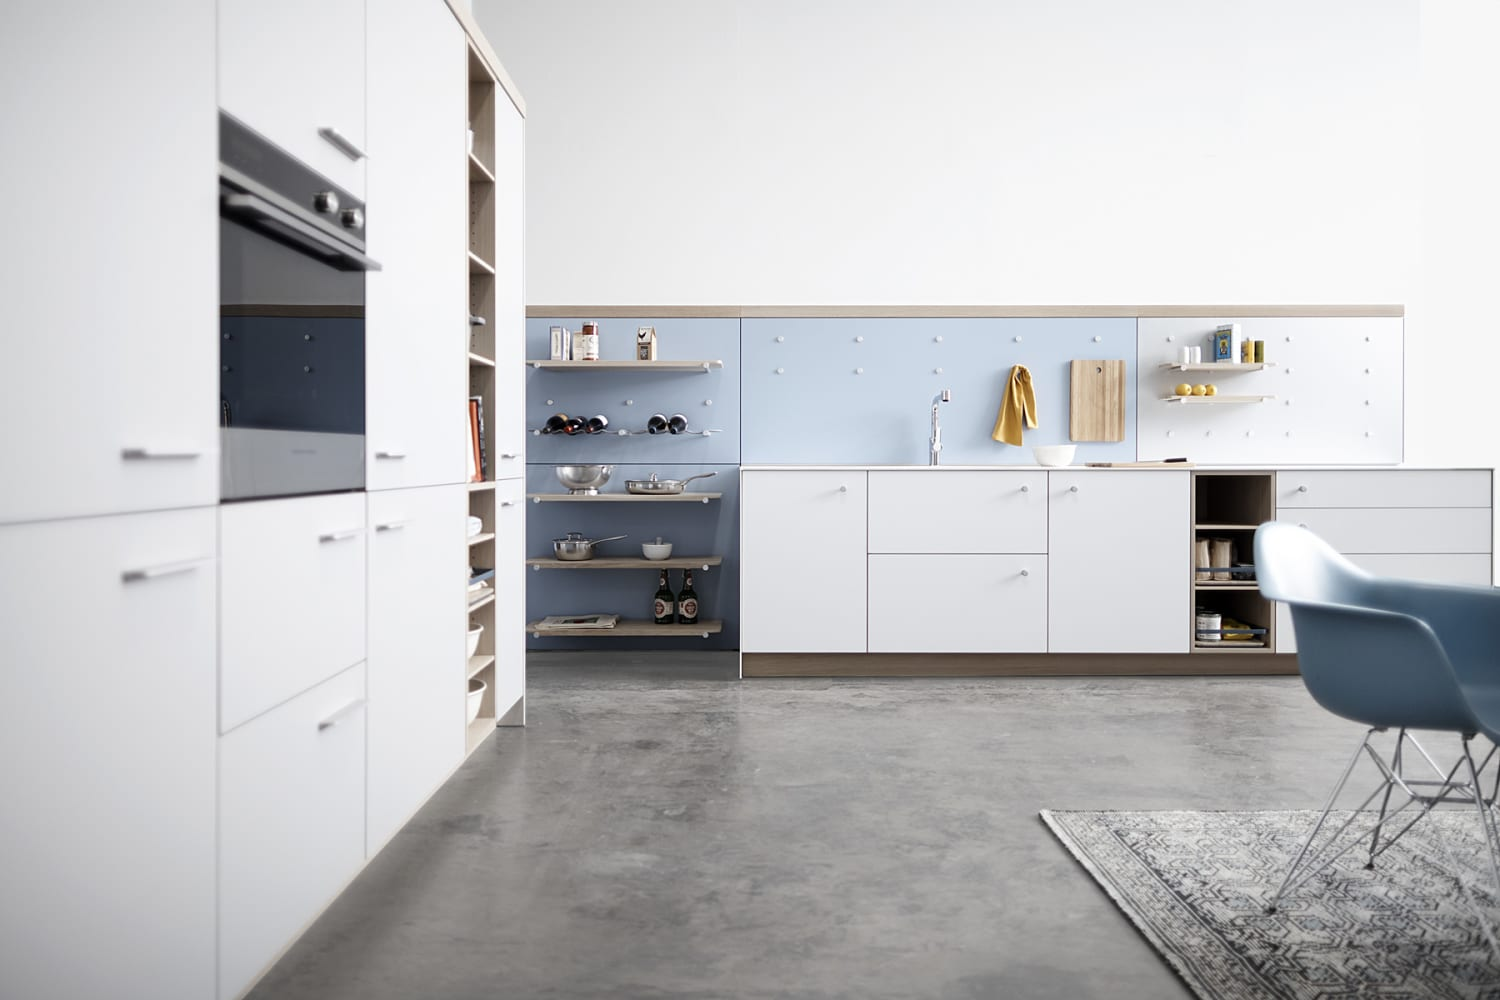 Henrybuilt's New Sister Company Helps You Design Your Dream Cook Space